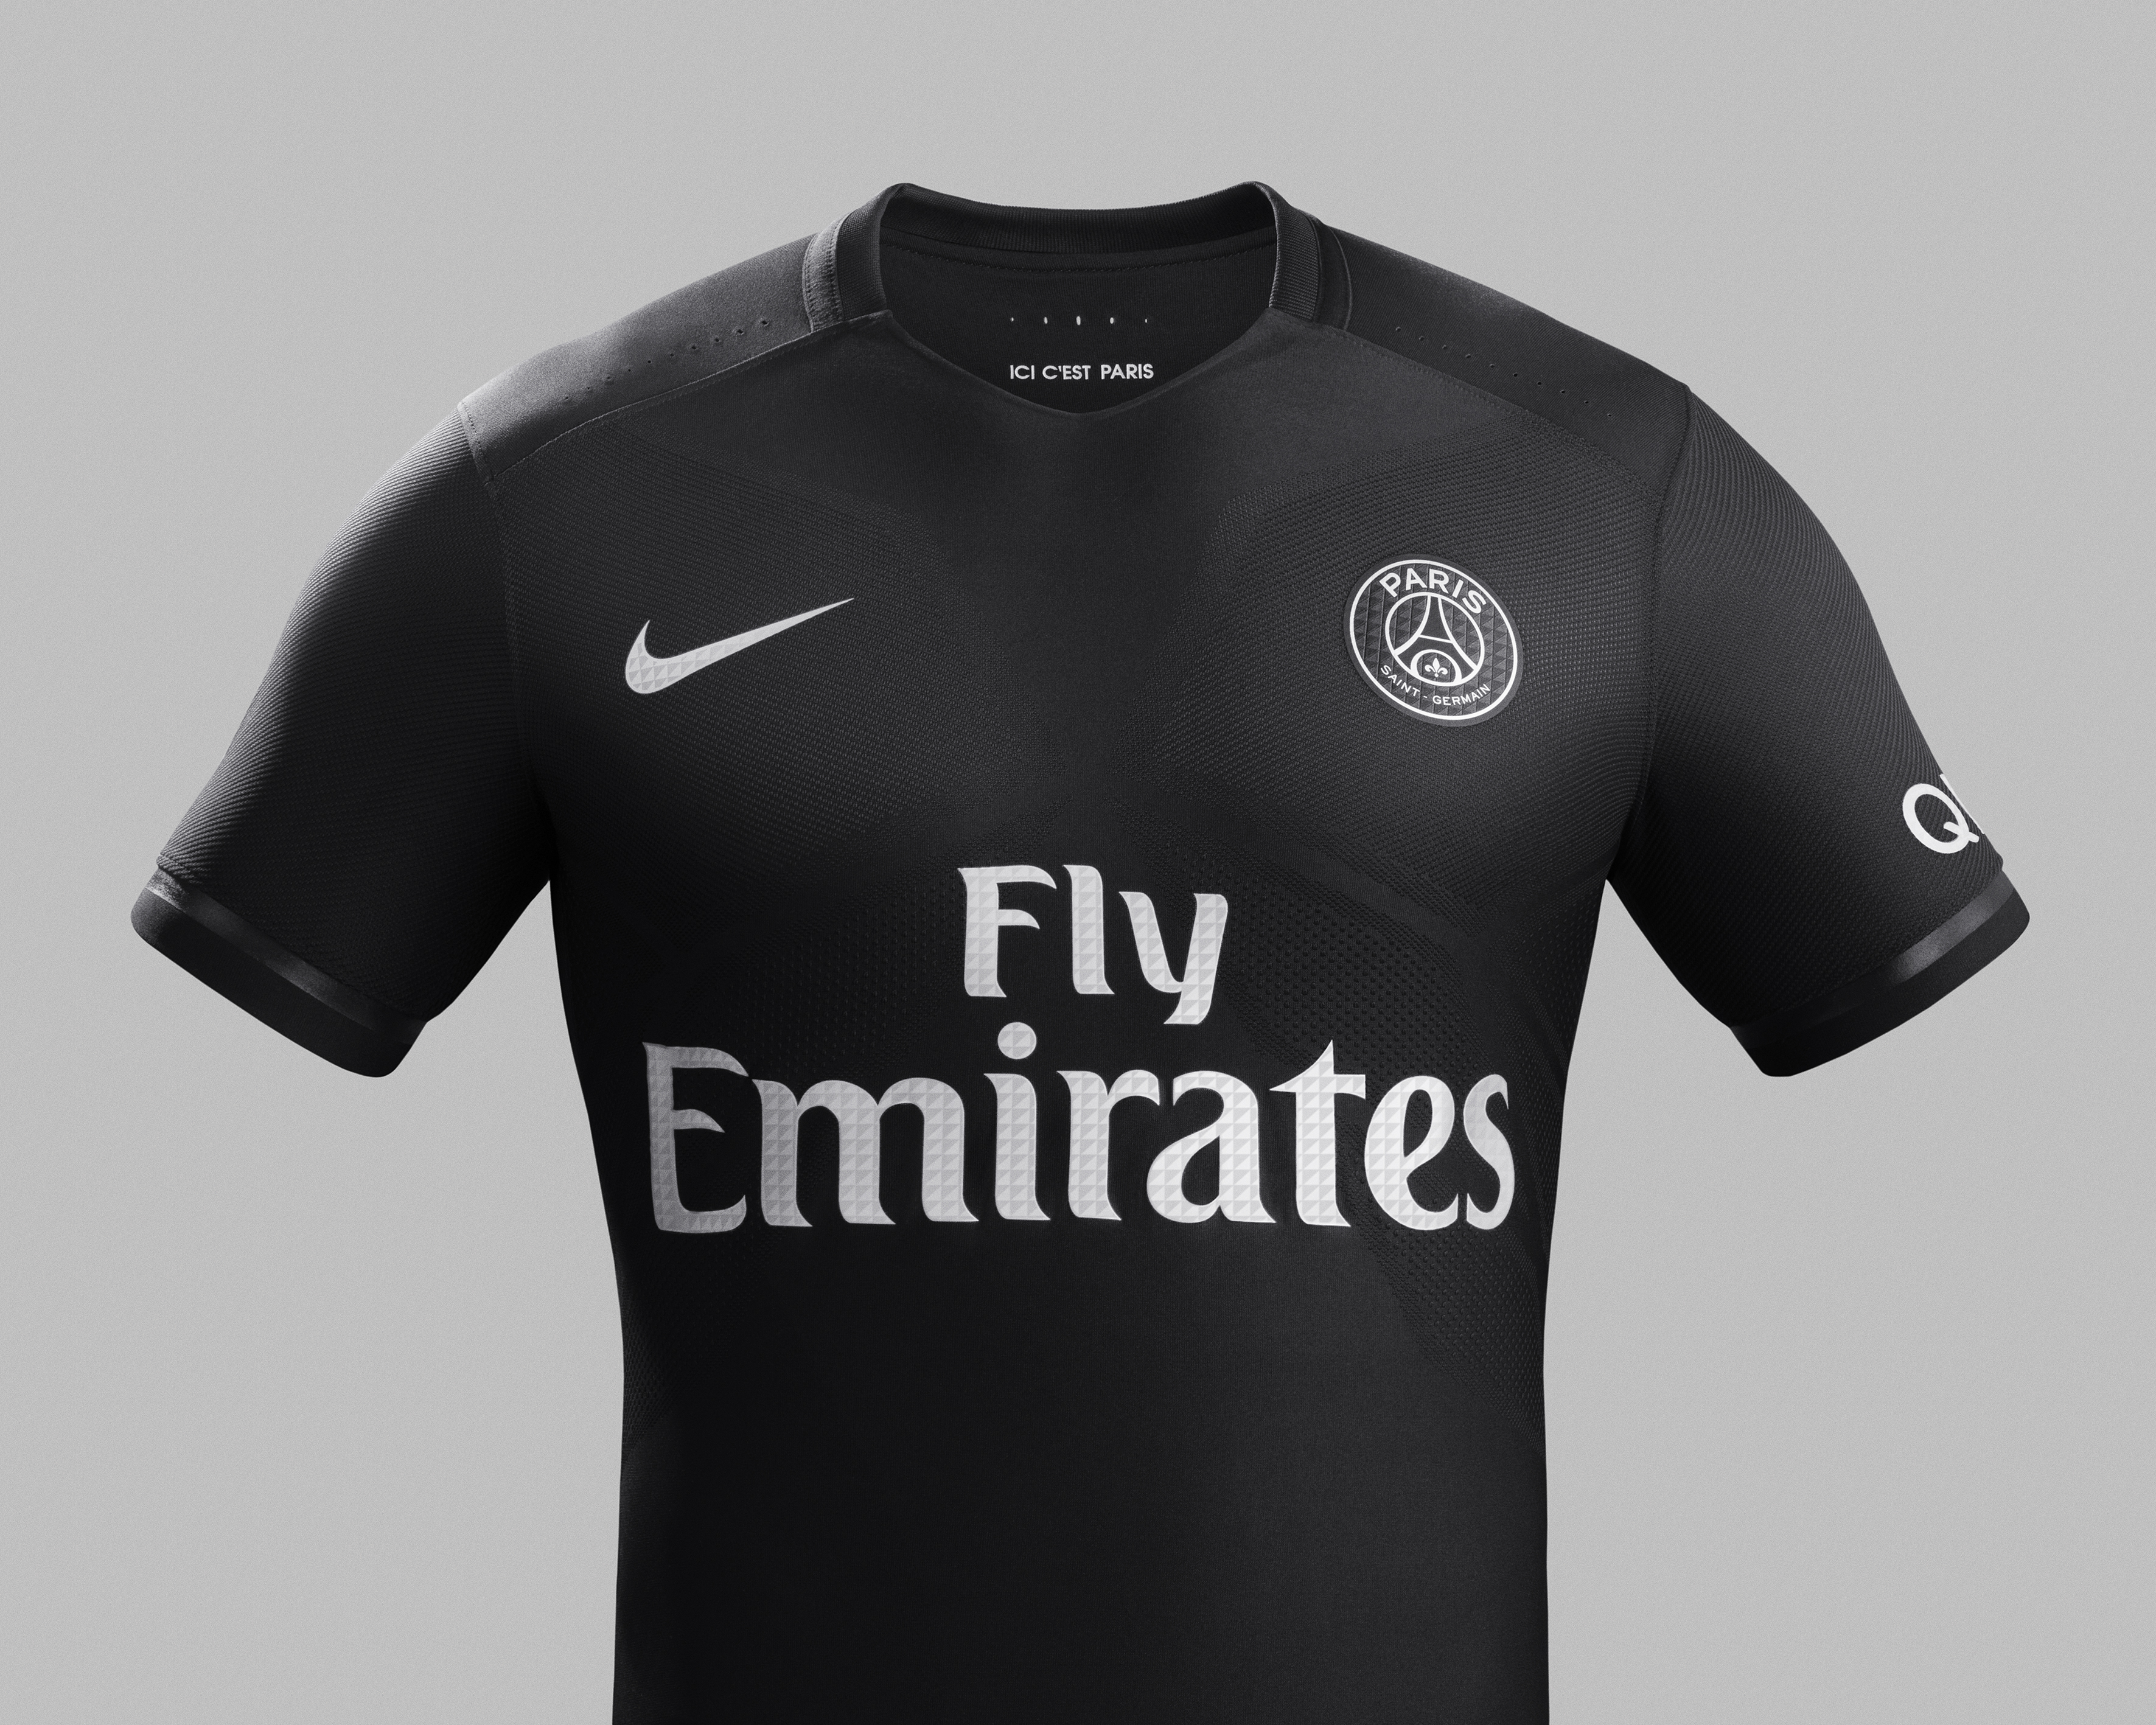 Psg black and pink jersey - Lo Hi